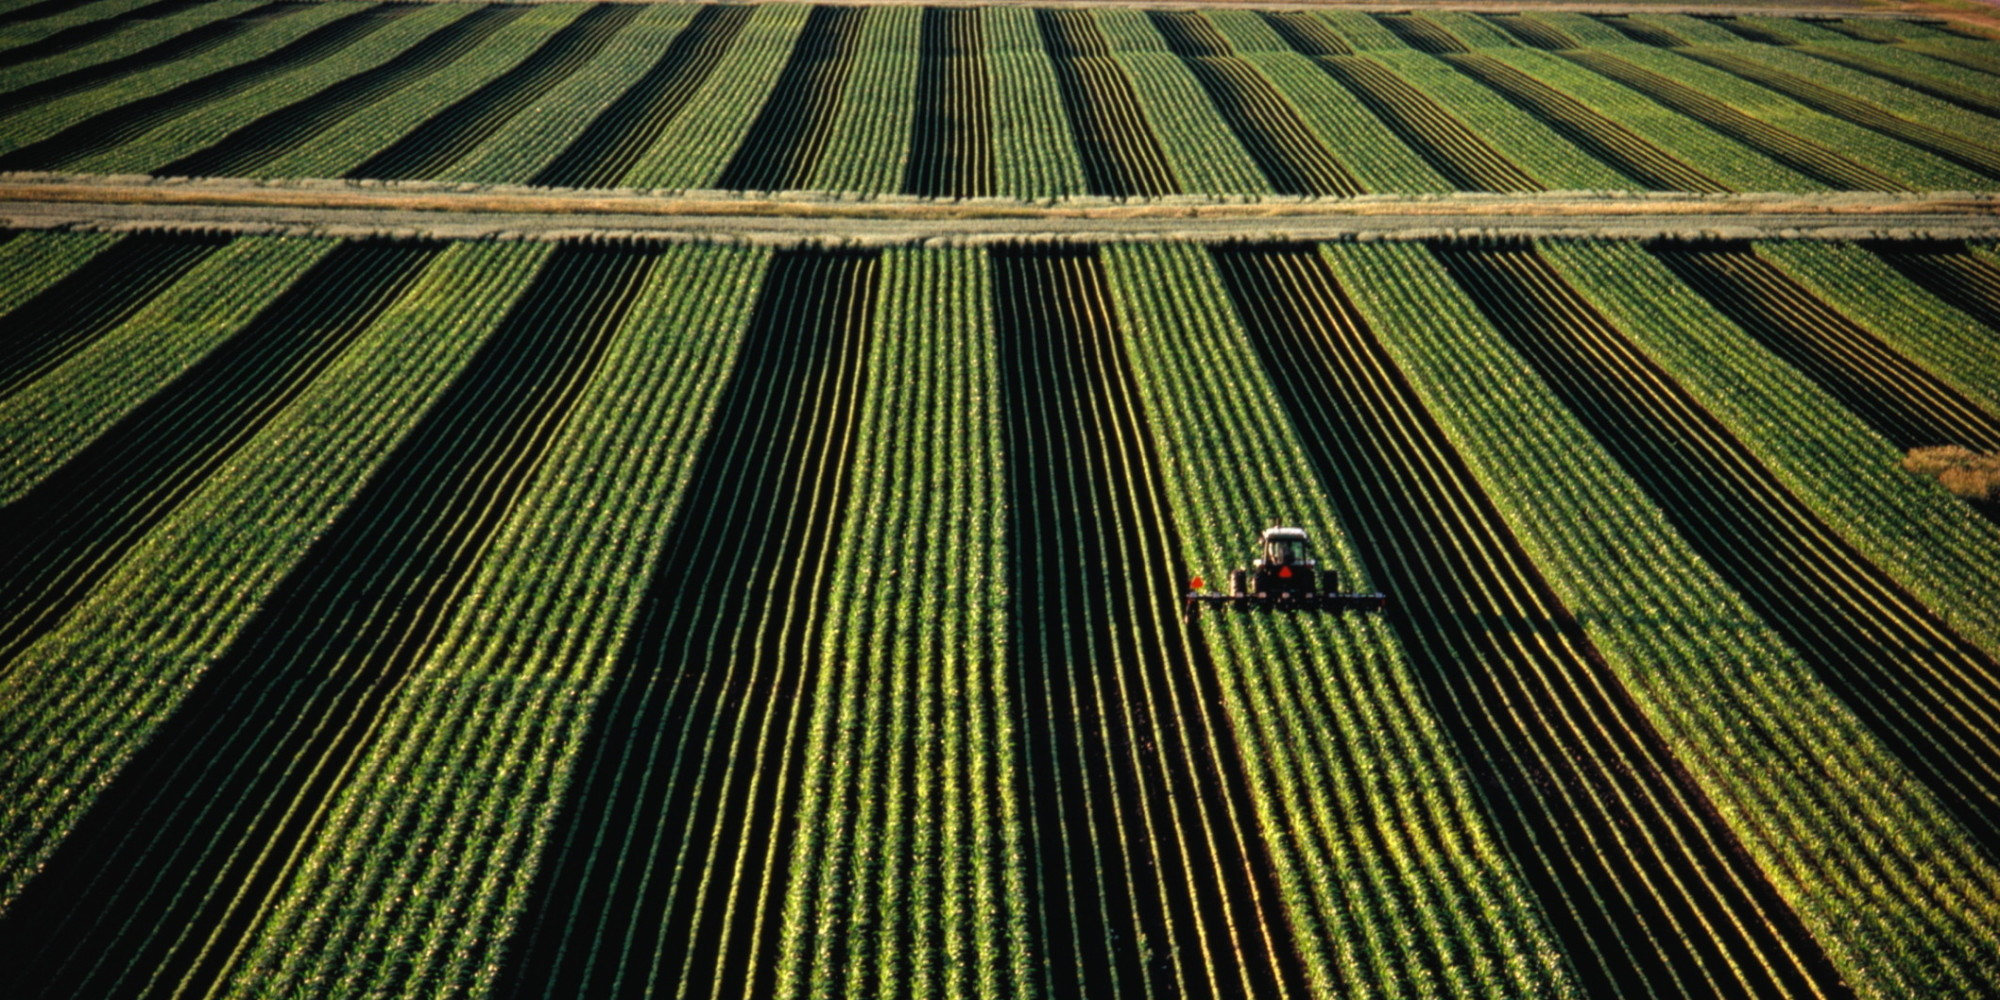 Agriculture Industry Fights For 'Right To Farm' In Midwest